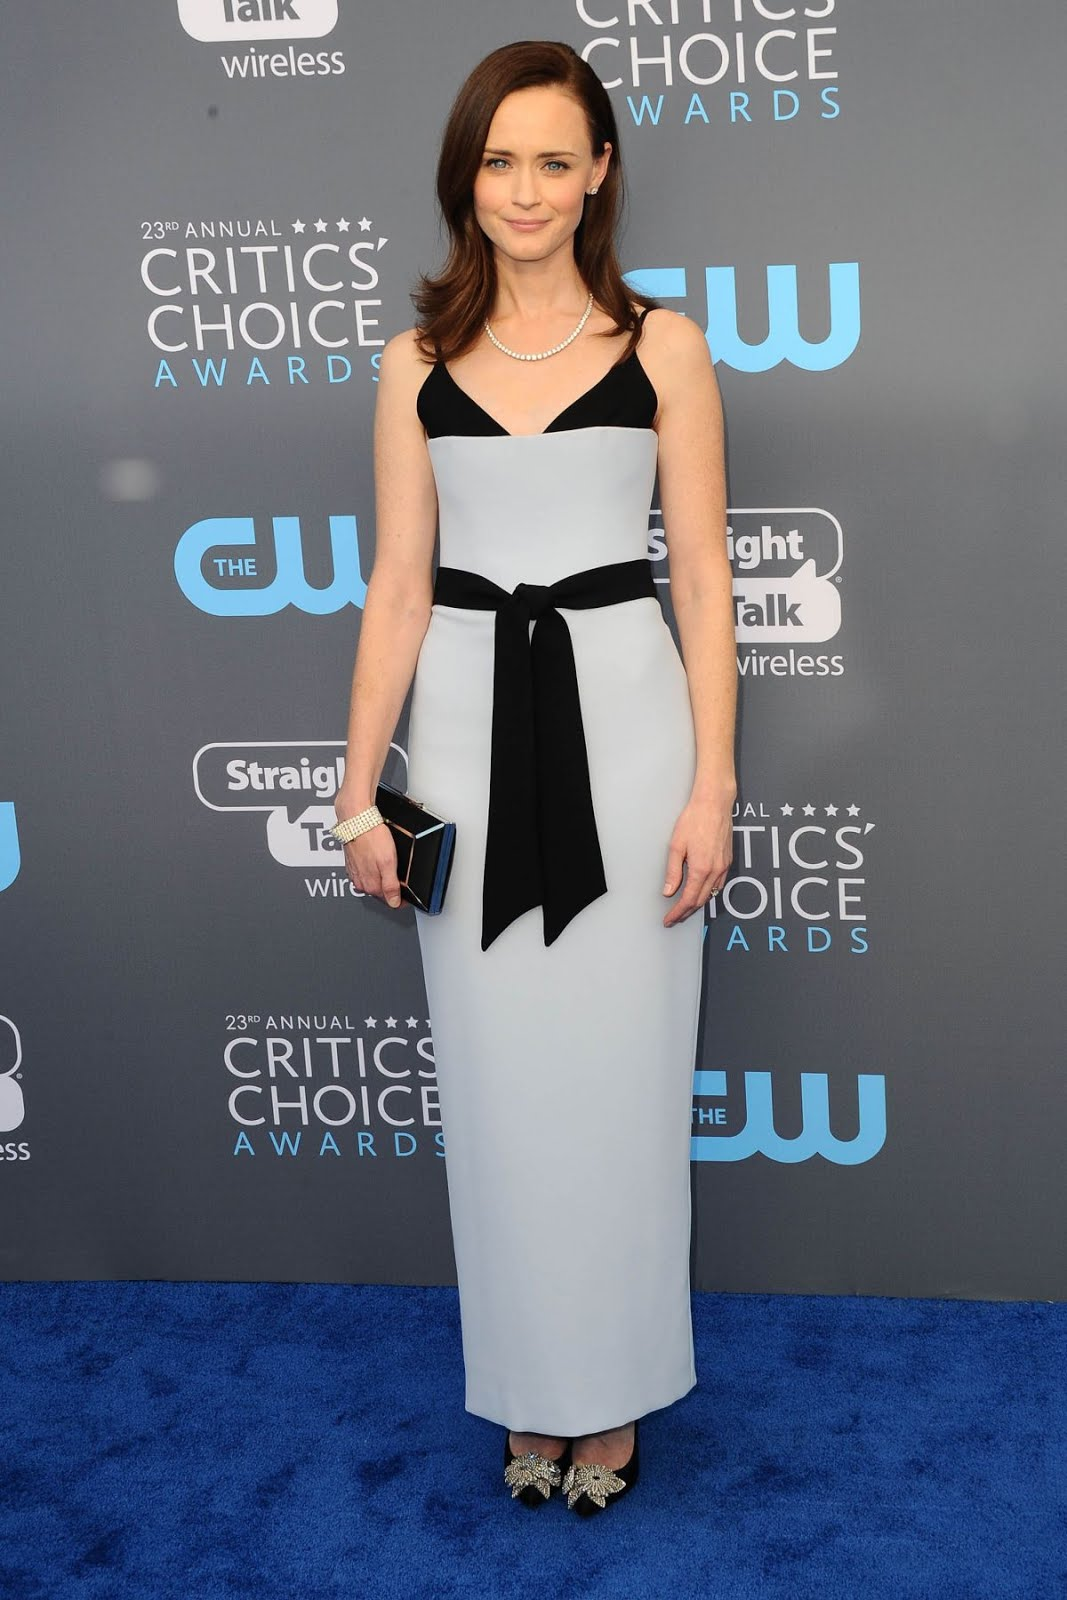 Alexis Bledel At 2018 critics Choice Awards In Santa Monica